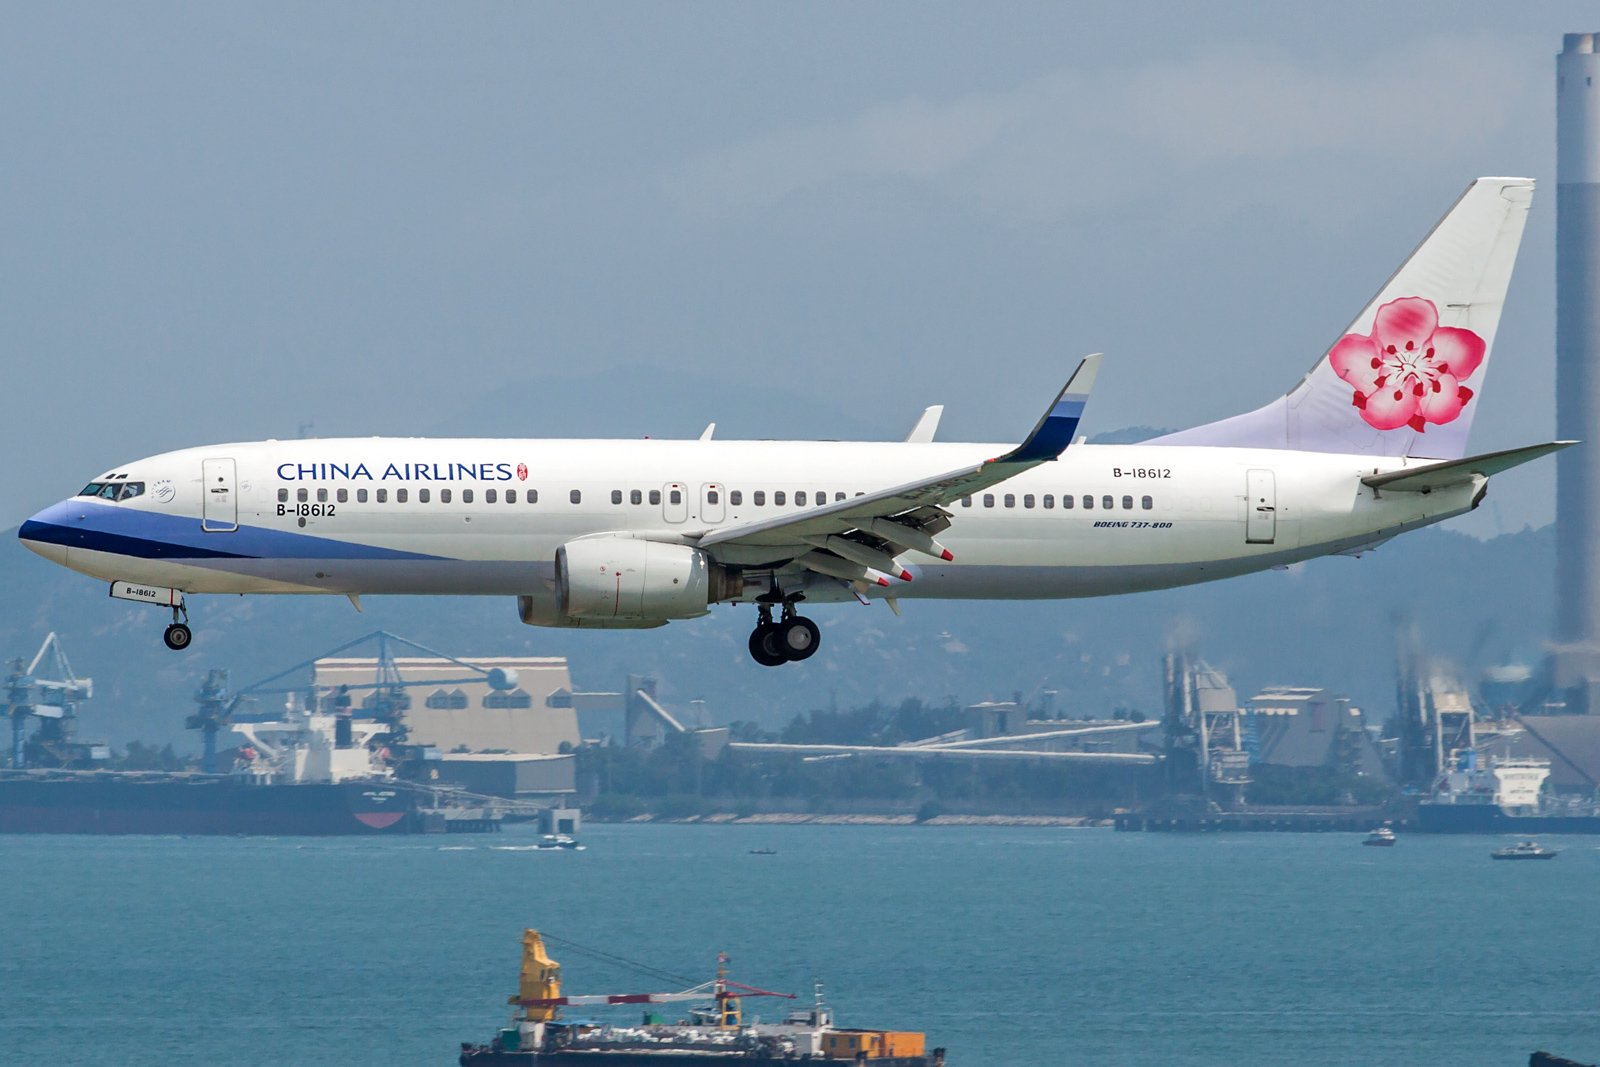 China Airlines Boeing 737-809(WL) B-18612